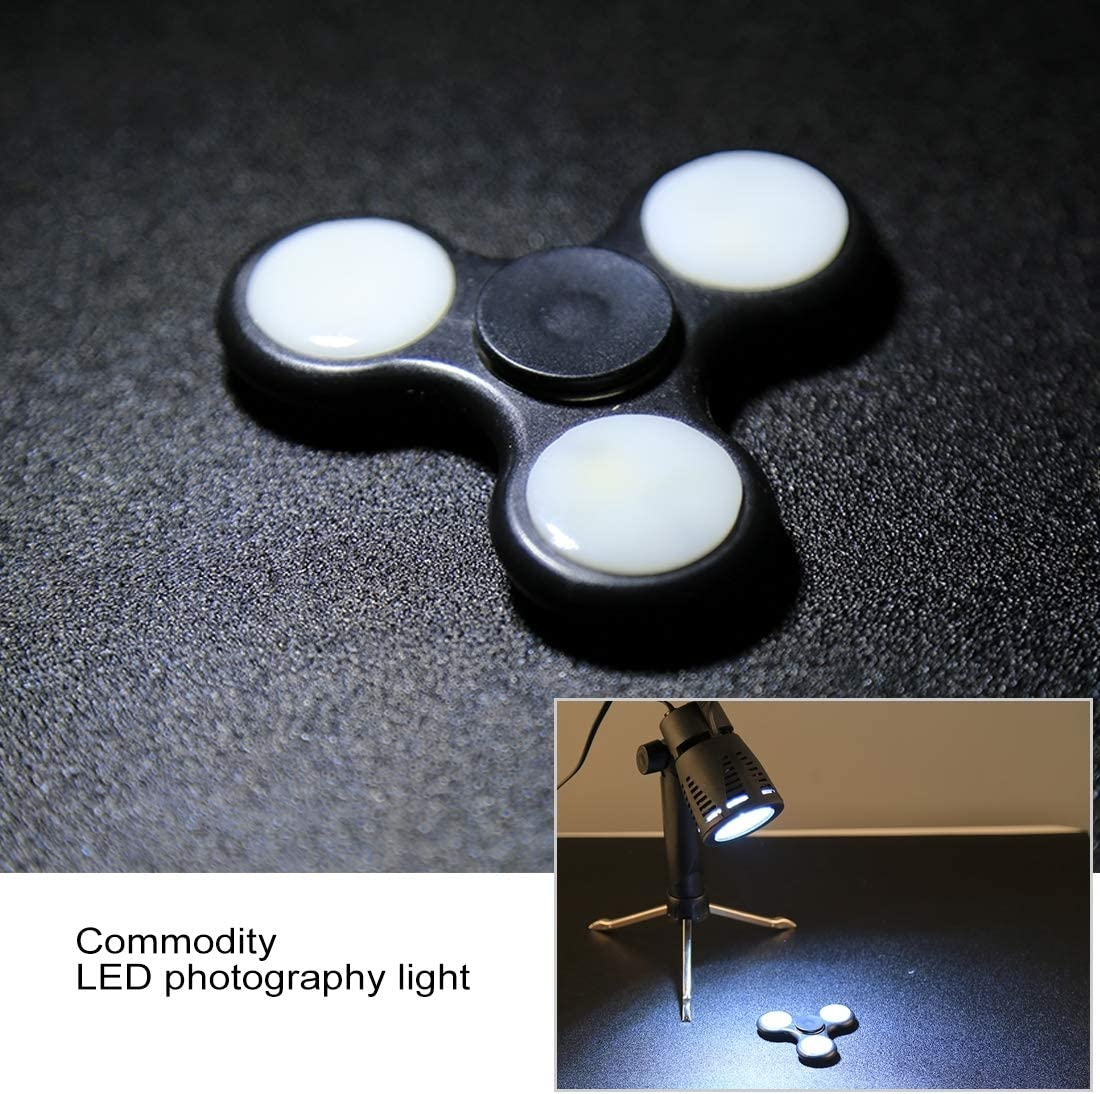 Color : White Light Perfect Home Convenience Durable 6W 12 SMD 5730 LED Photography Photo Studio Portable Handheld Light Lamp Durable